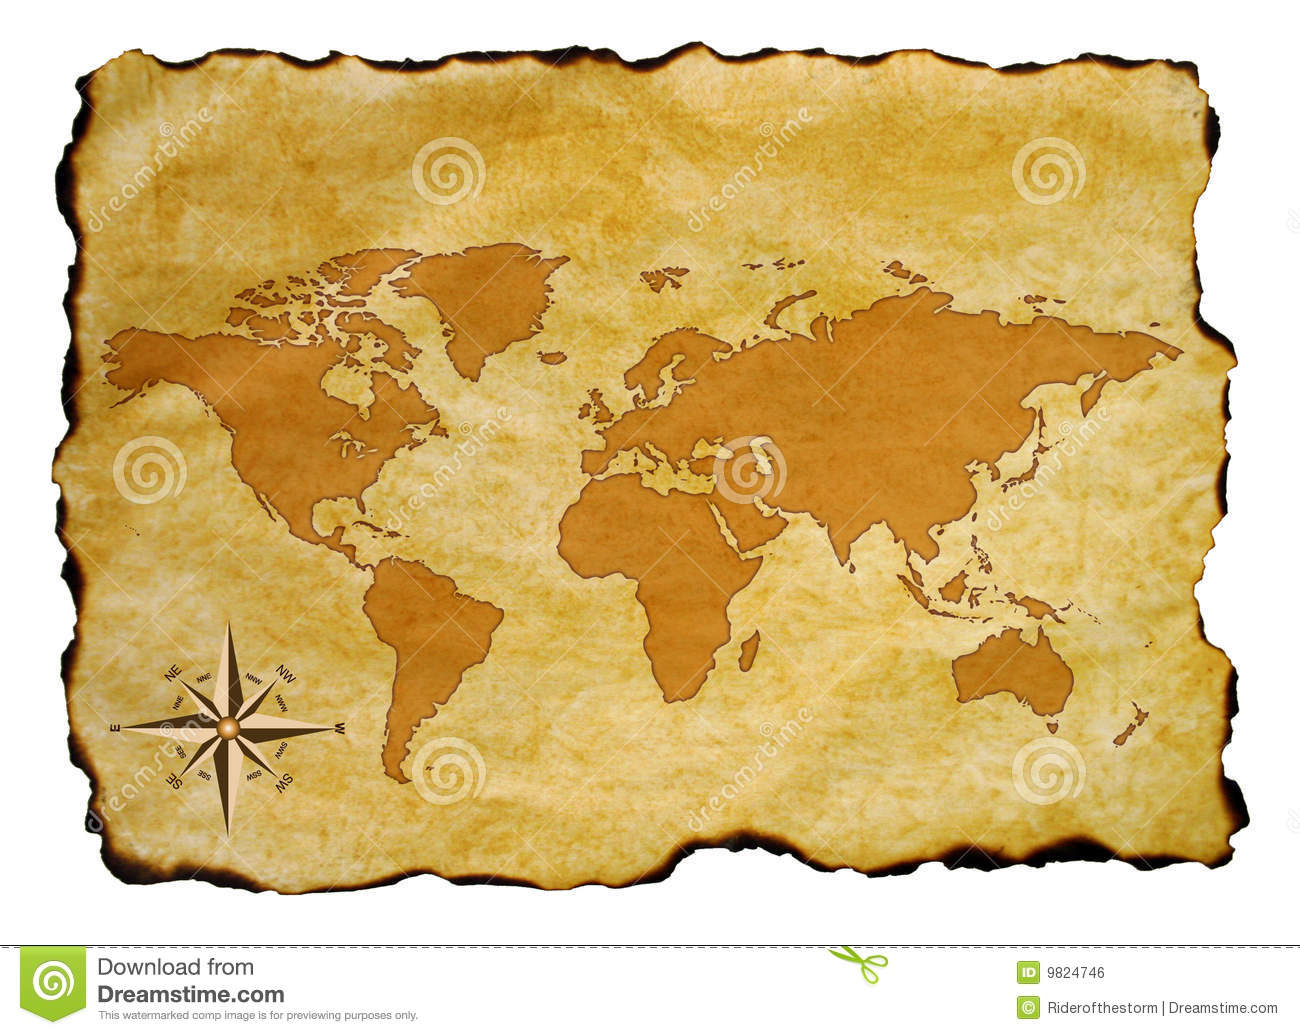 Old world map stock illustration illustration of background 9824746 old world map gumiabroncs Choice Image